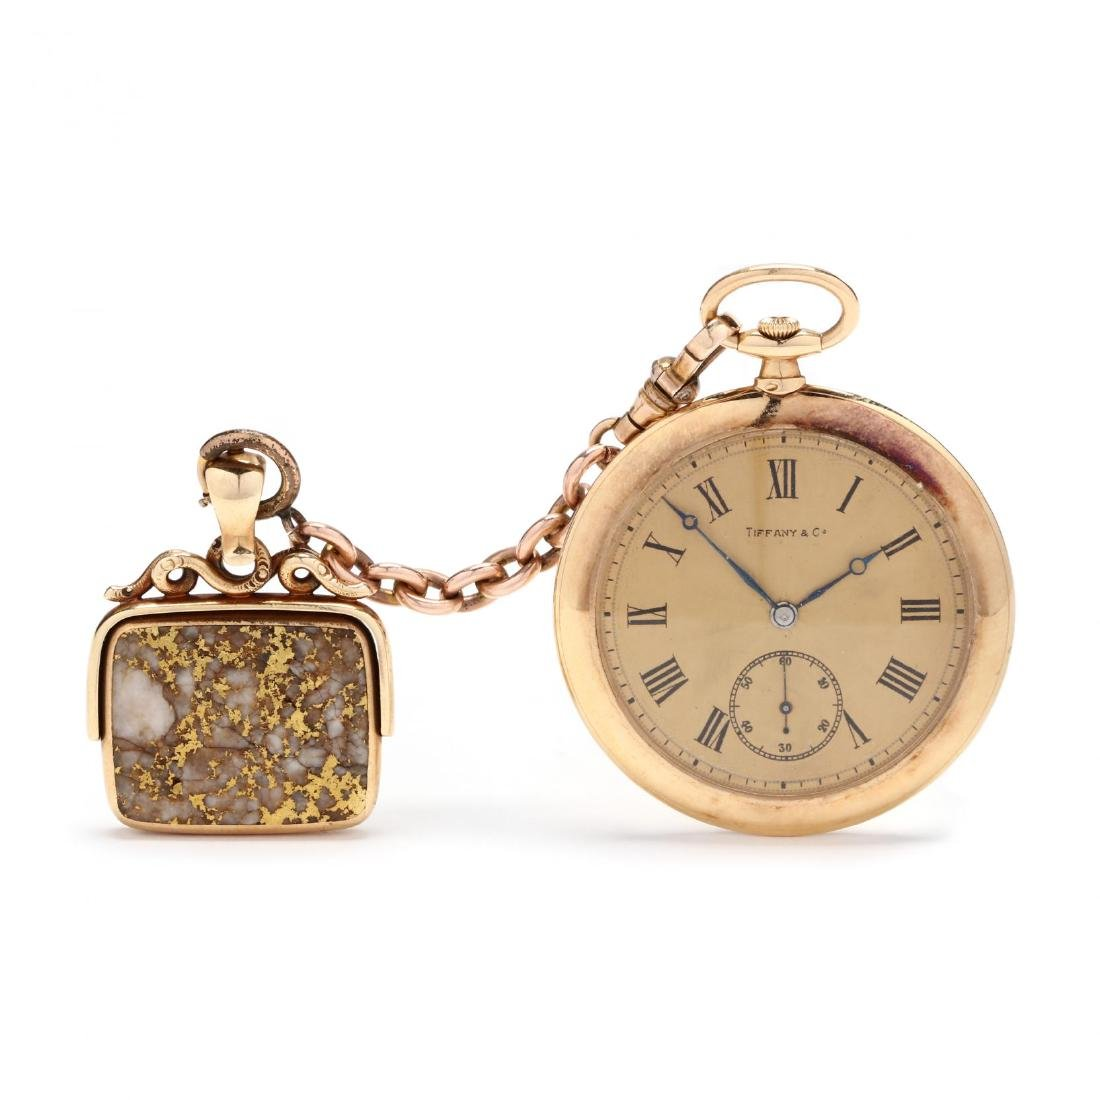 Vintage Tiffany & Co. 18KT Pocket Watch with